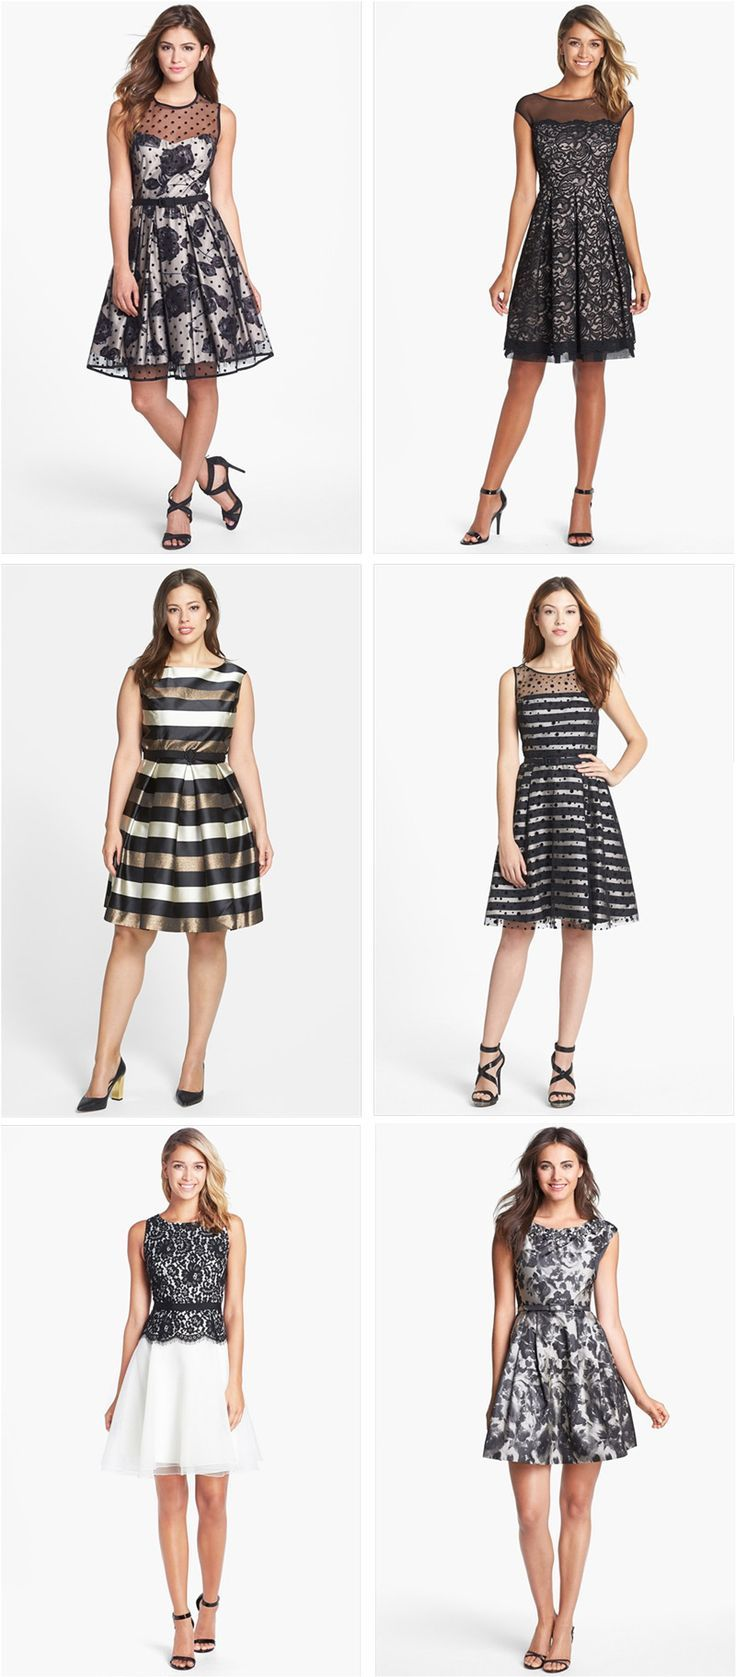 Holiday party dresses in black & white